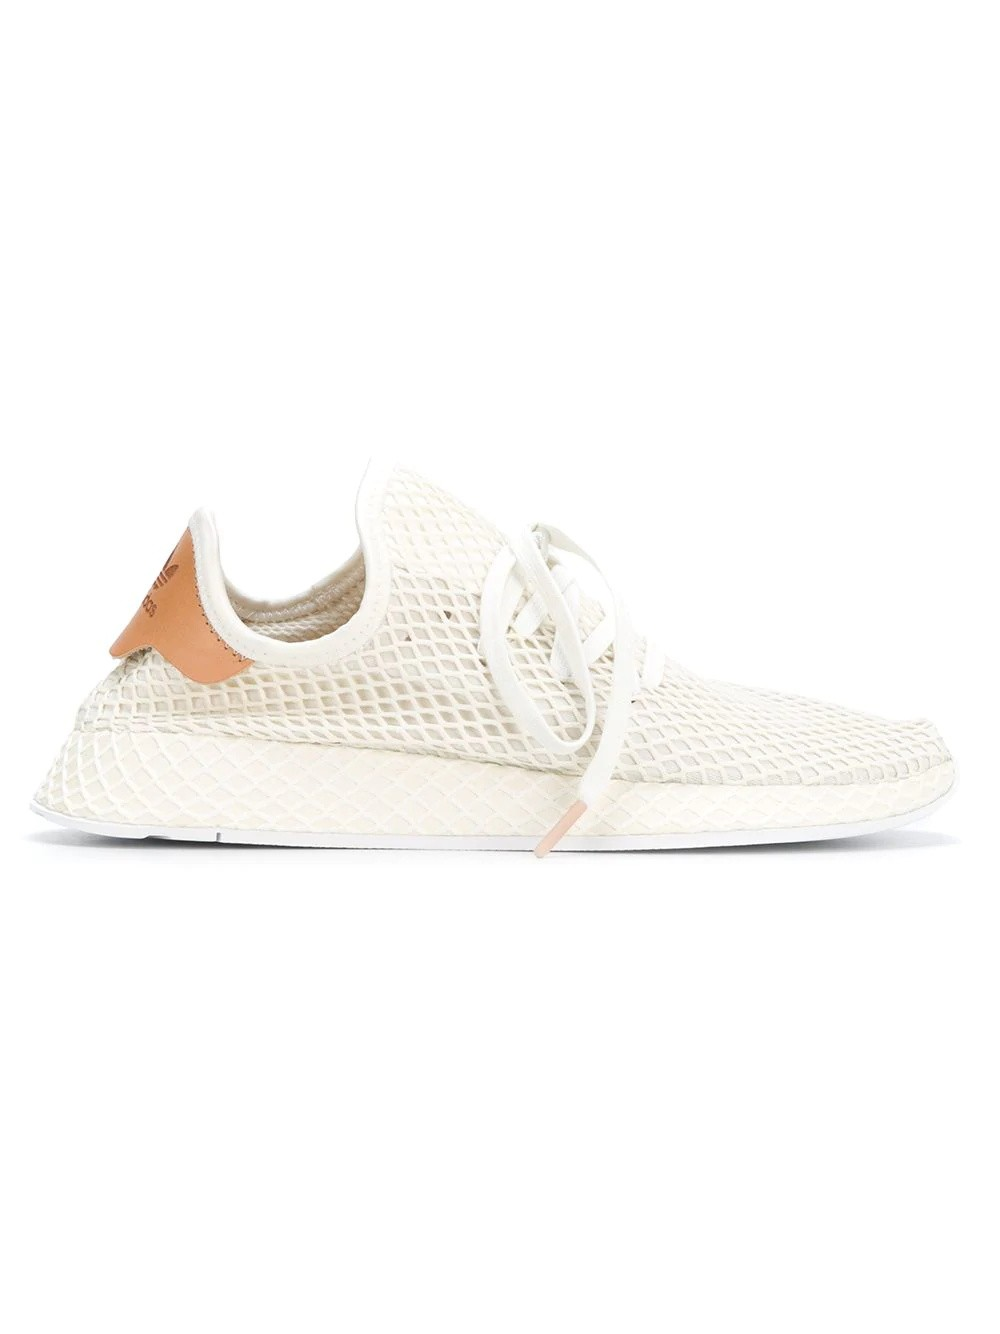 Adidas Originals Deerupt Runner (Blanche/Blanche/Marron) B41759